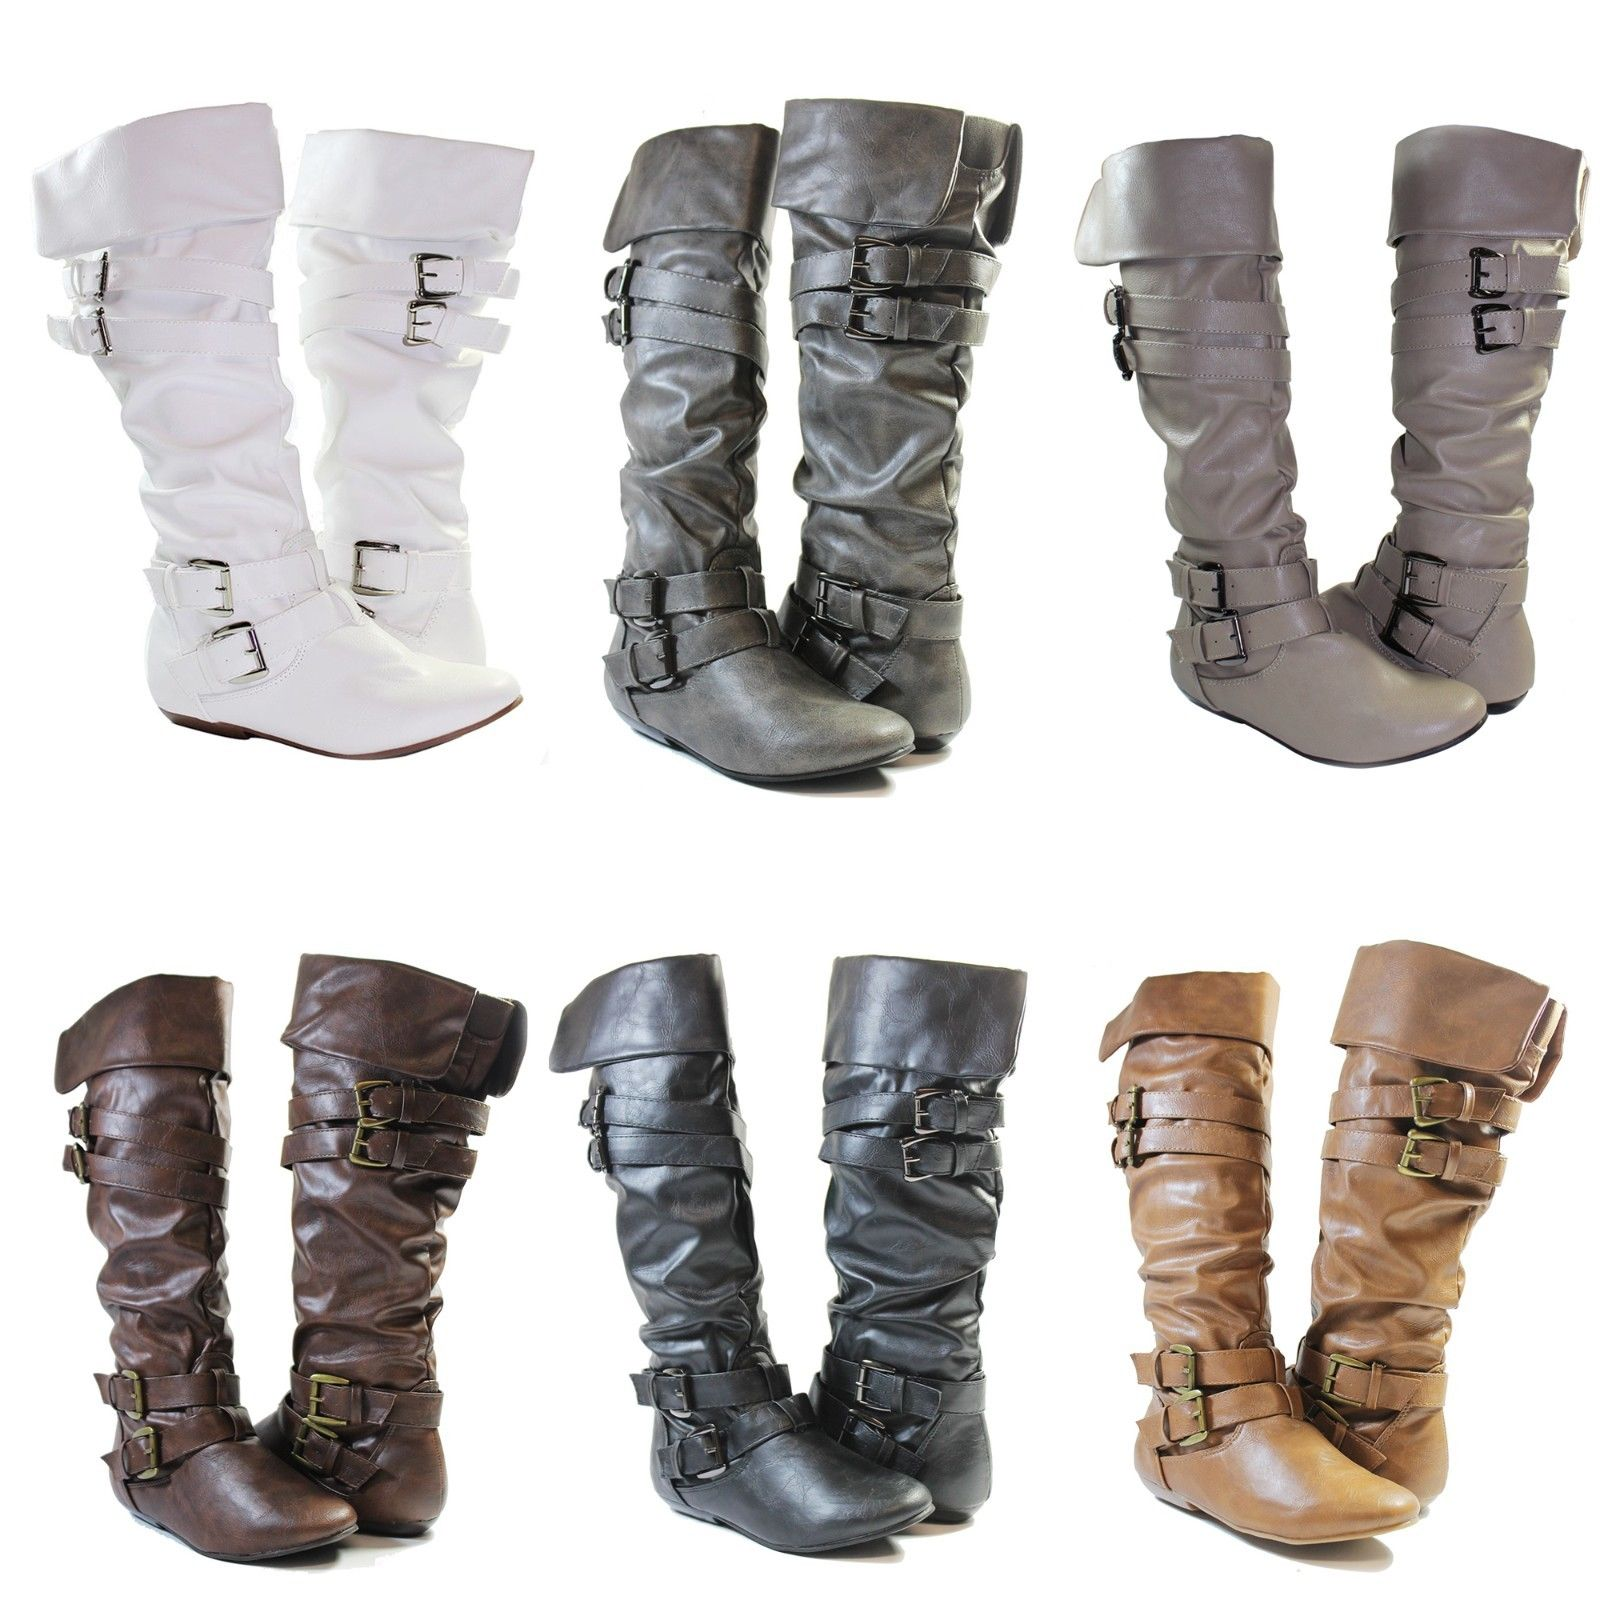 cheap leather boots ,original ugg ,ugg boots price ,tan ugg boots